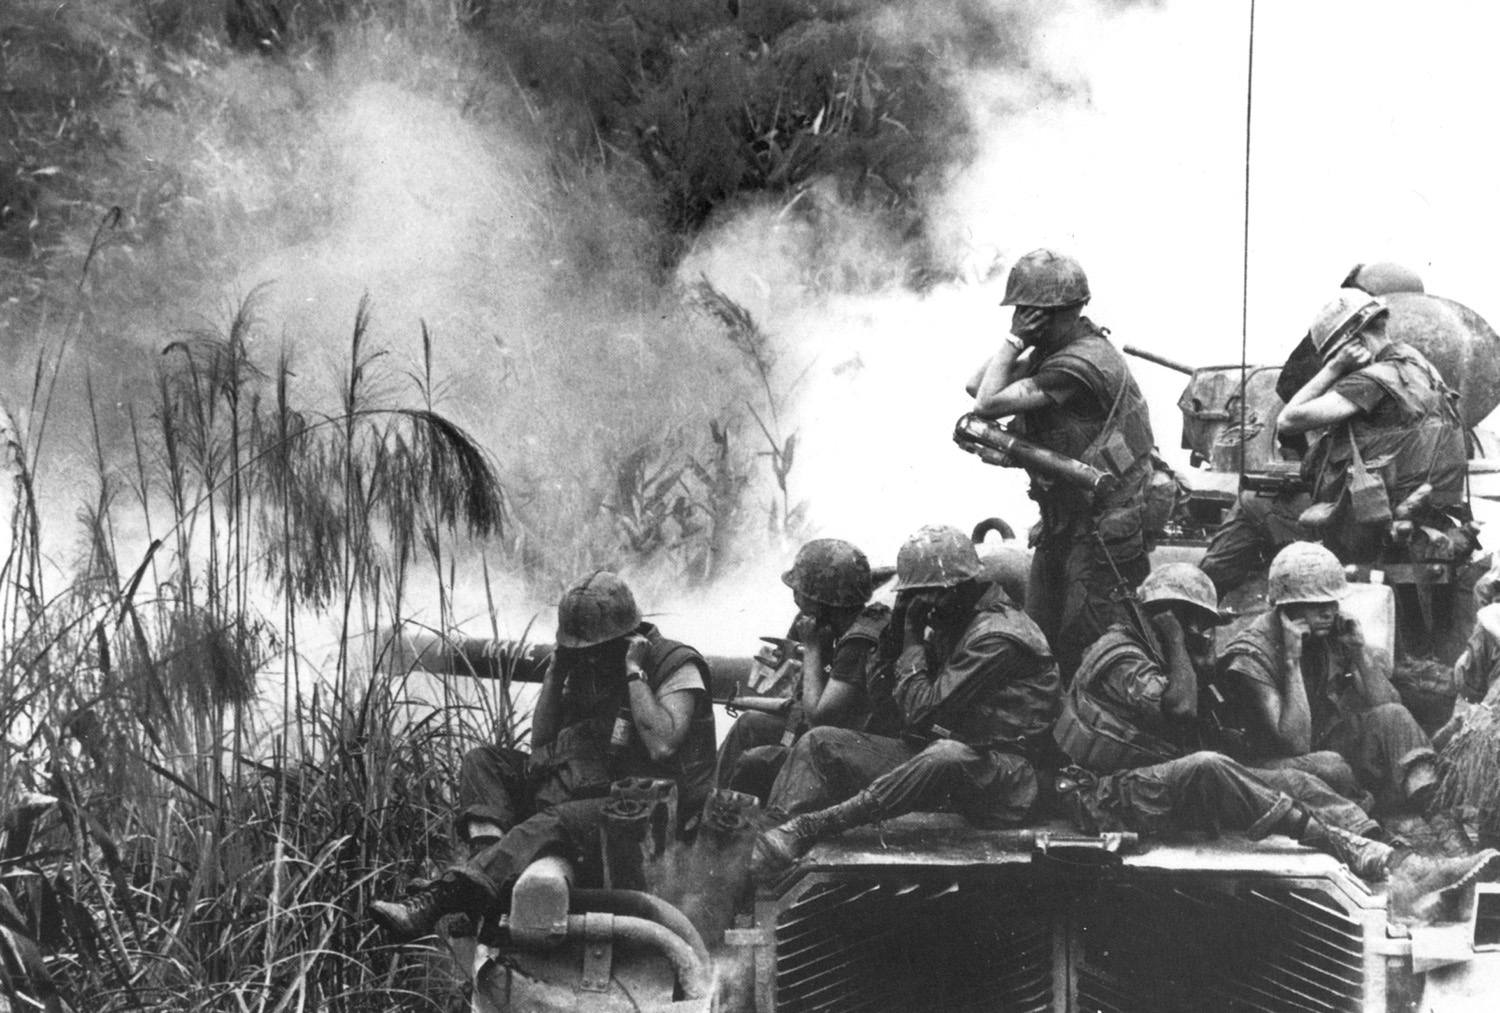 1968_04_marines_on_m48_tank_near_phu_bai_sweeping.jpg